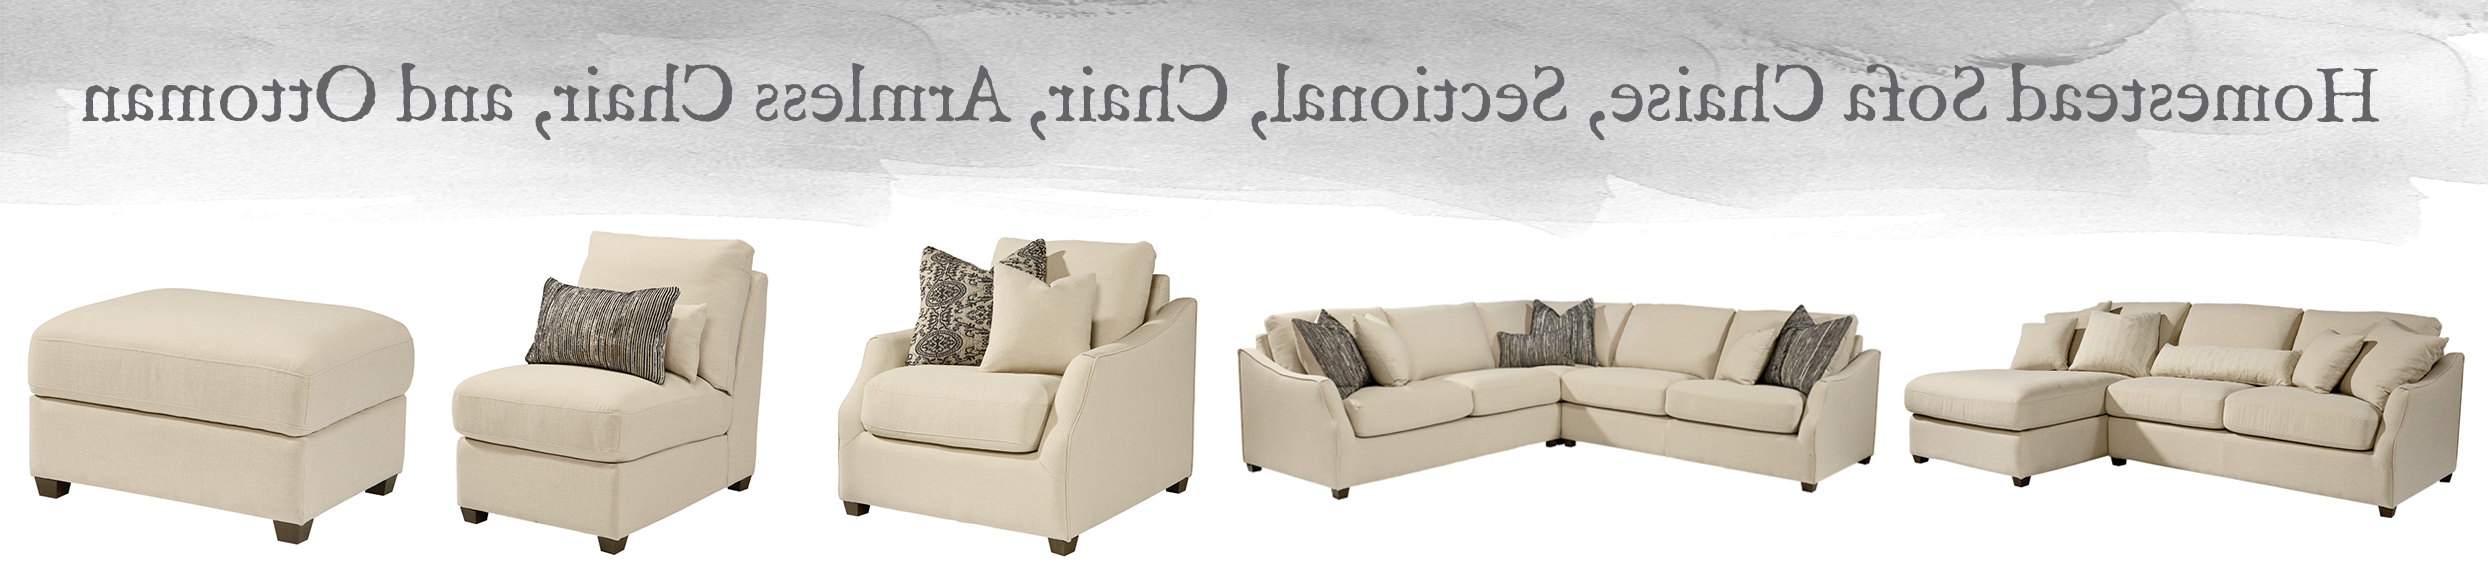 Magnolia Home Preview: Upholstered Living Room Collection (View 10 of 20)